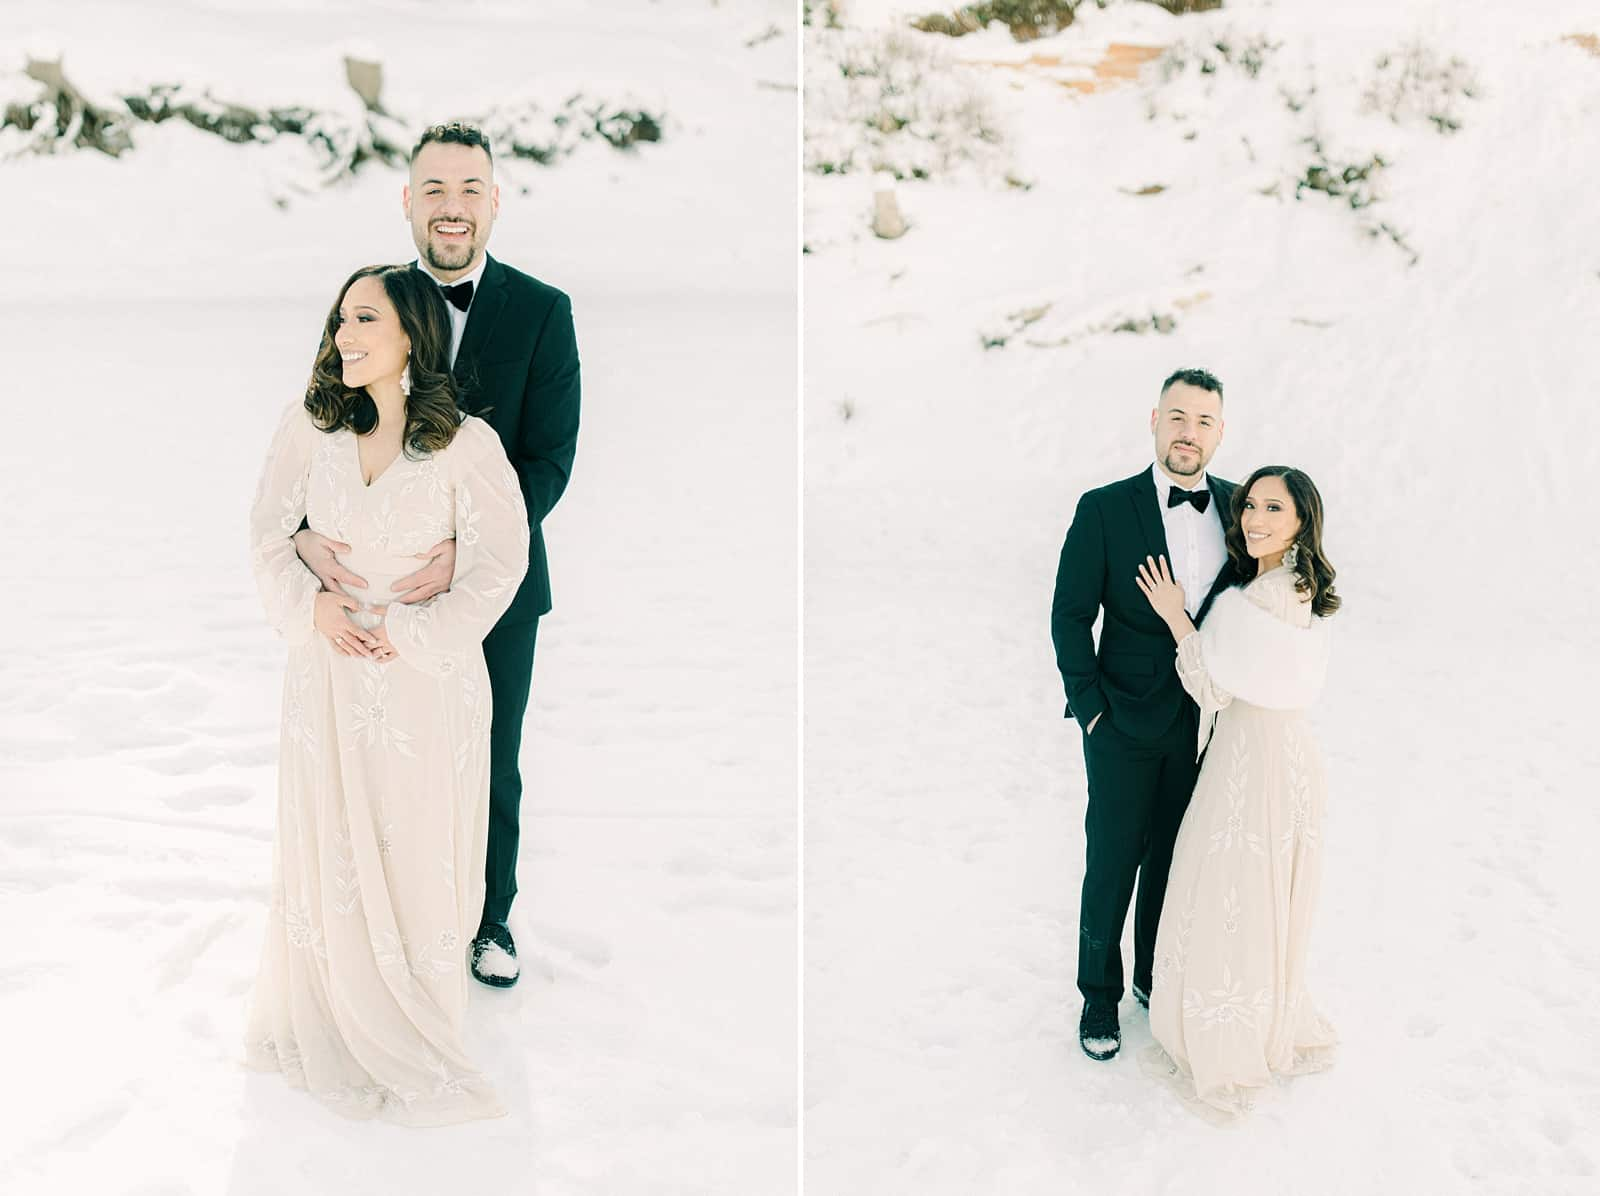 Bride and groom laughing, winter wedding in snow